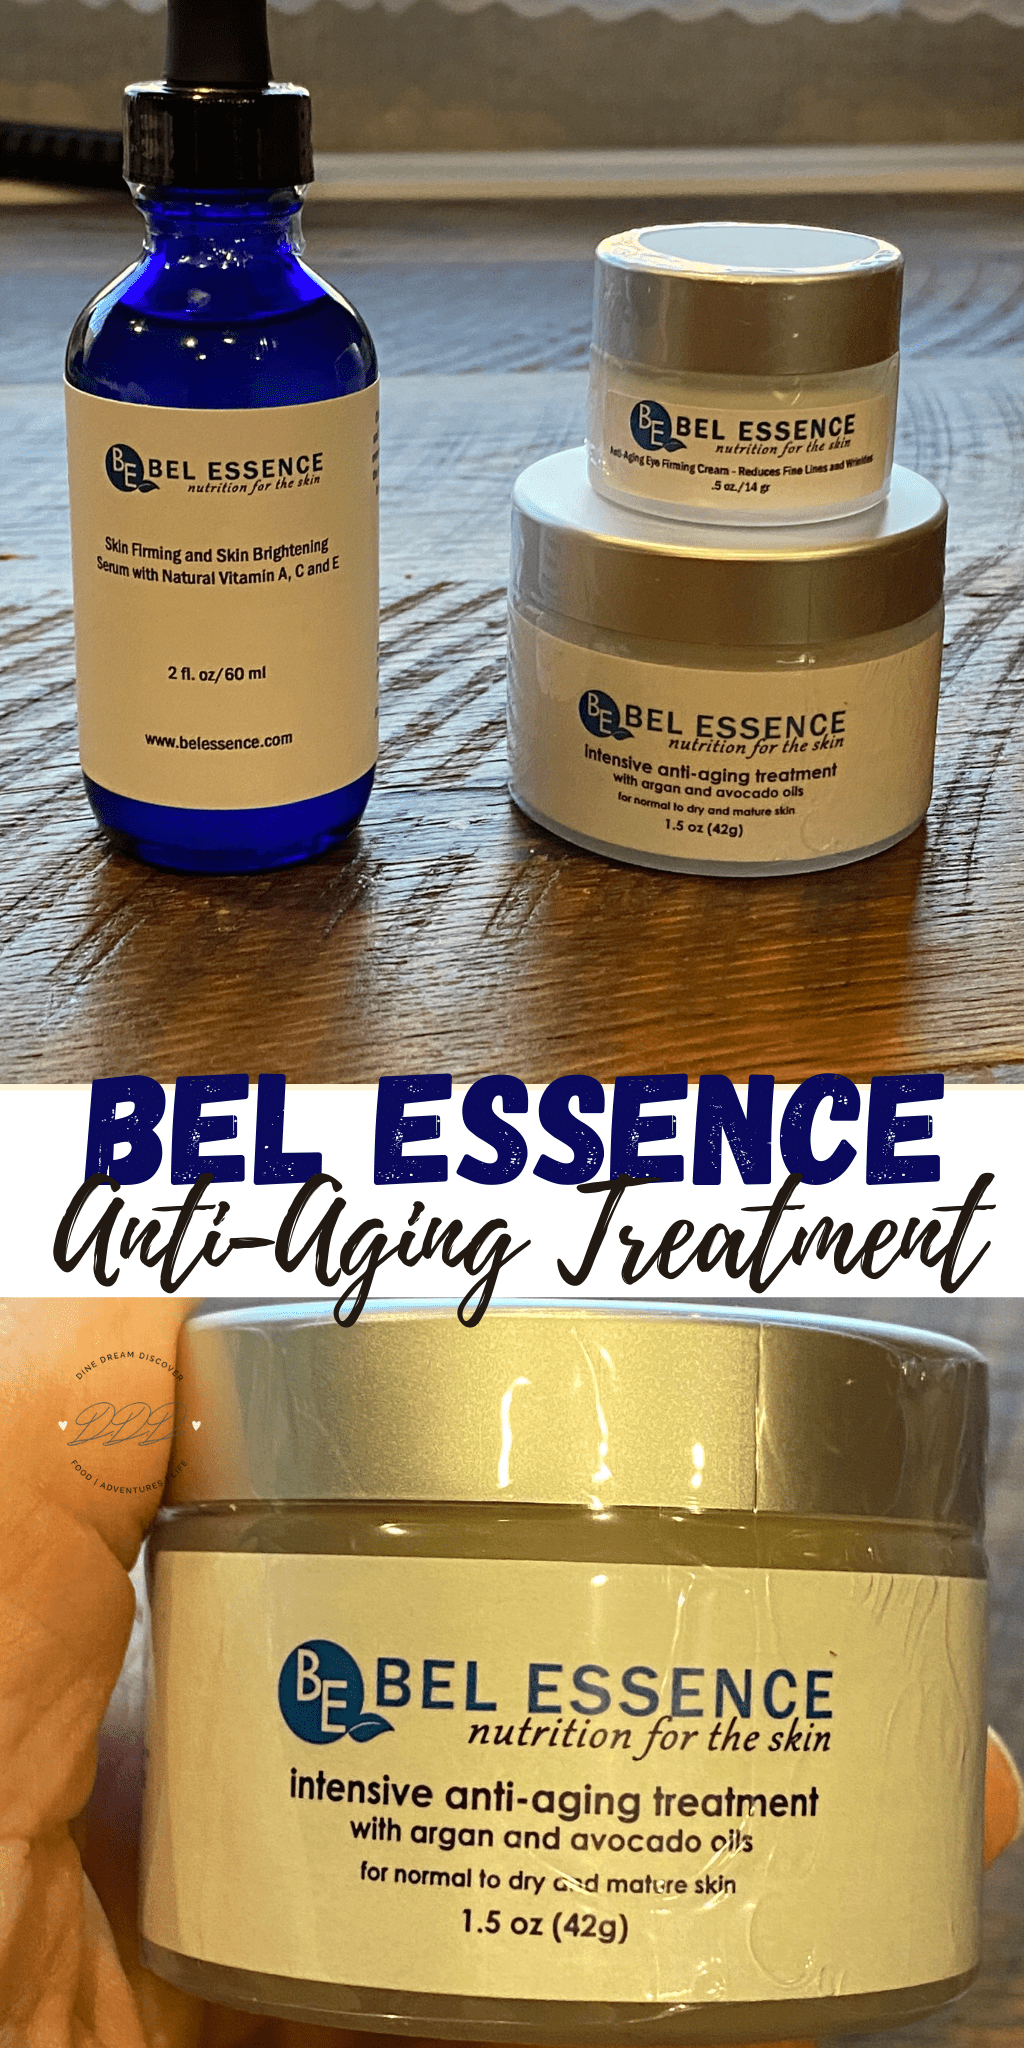 Bel Essence Anti-Aging Products